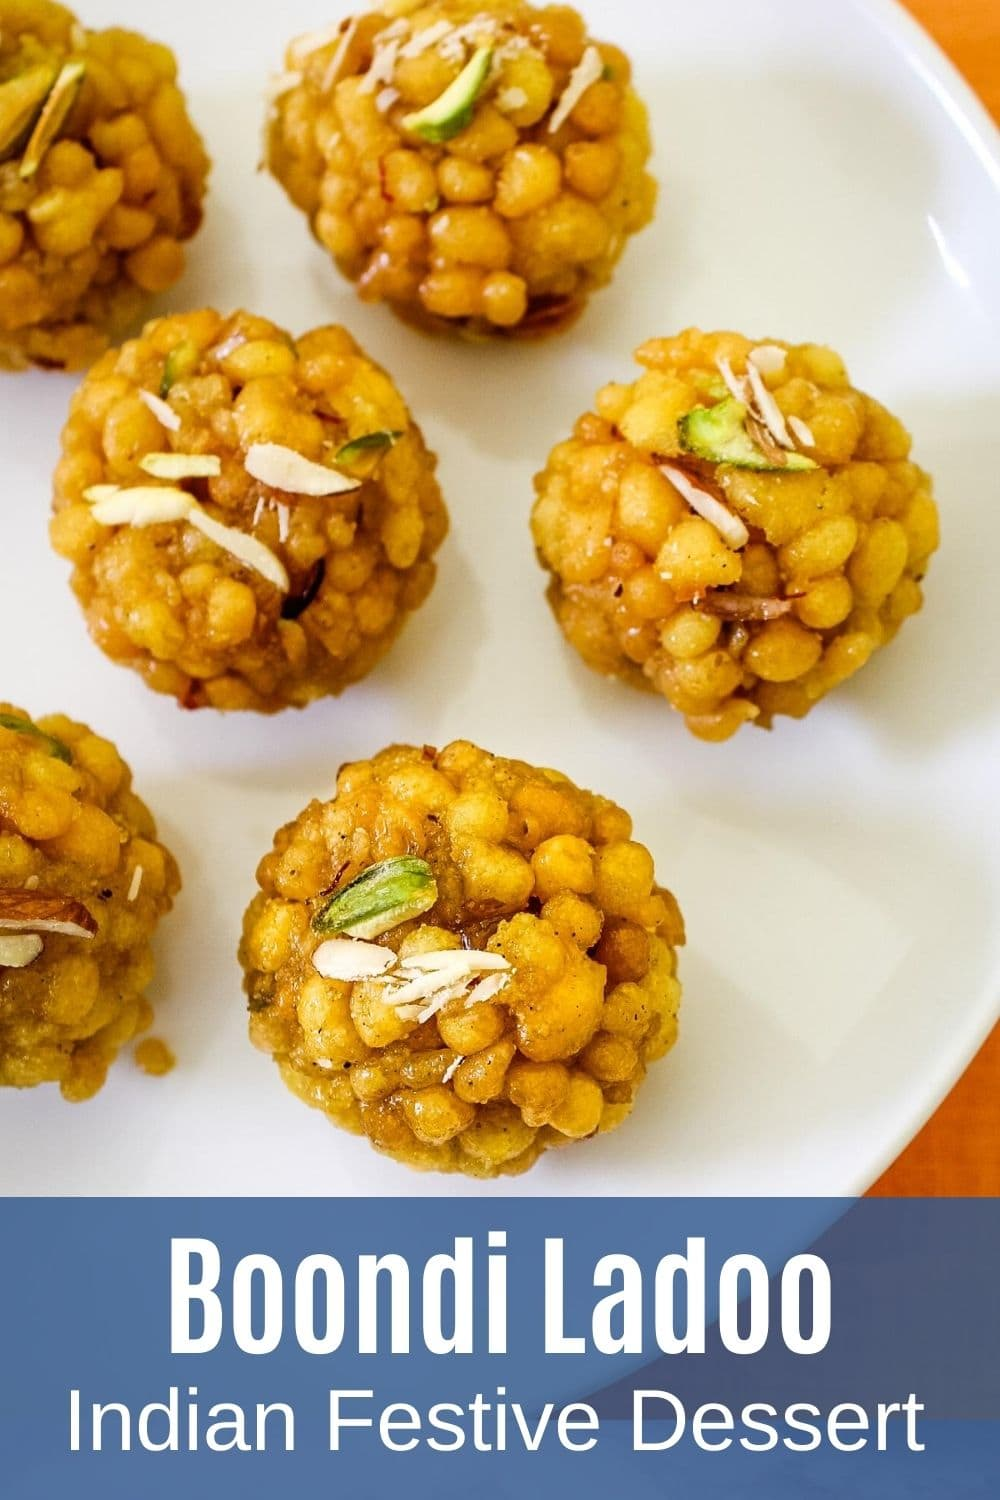 Boondi ladoo on plate garnished with chopped nuts with text at the bottom of the image for pinterest